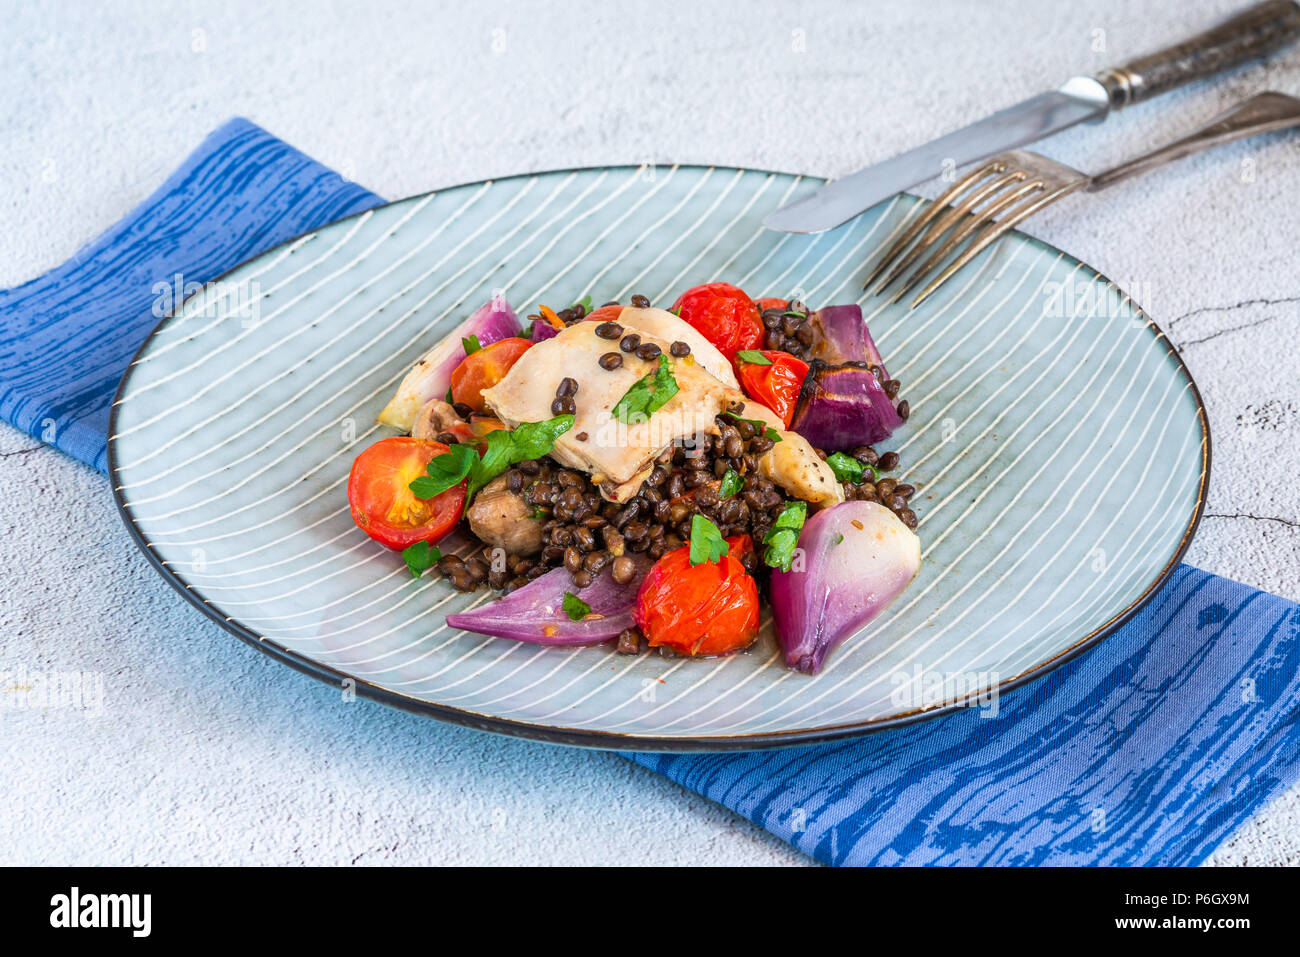 Chicken and cherry tomatoes bake with puy lentils - Stock Image